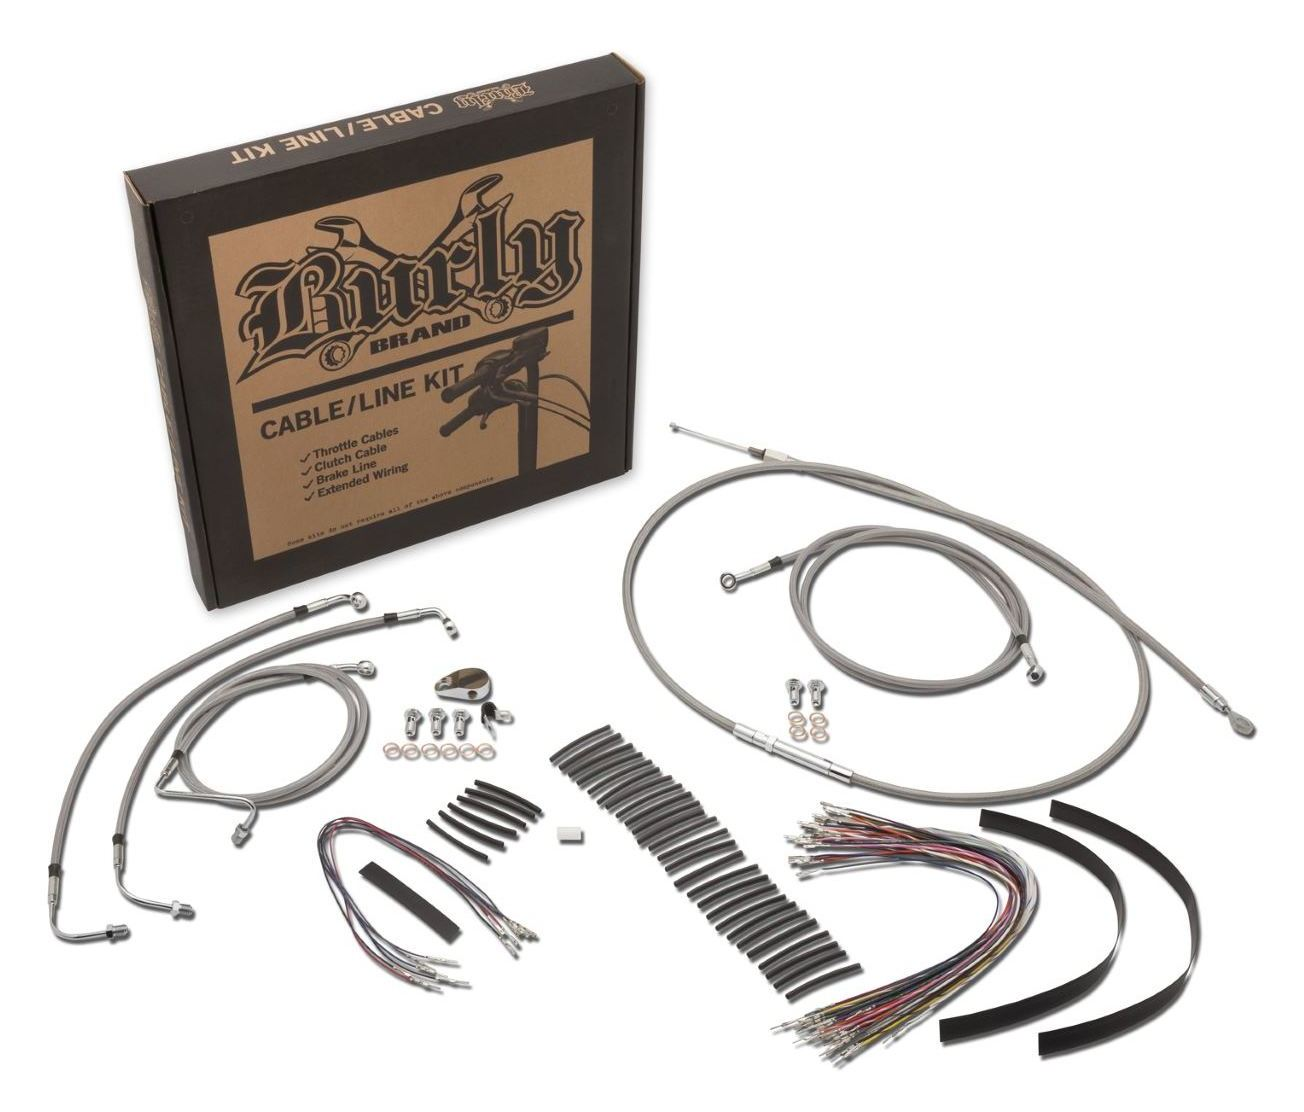 Burly Handlebar Cable Installation Kit For Harley Road King / Glide on